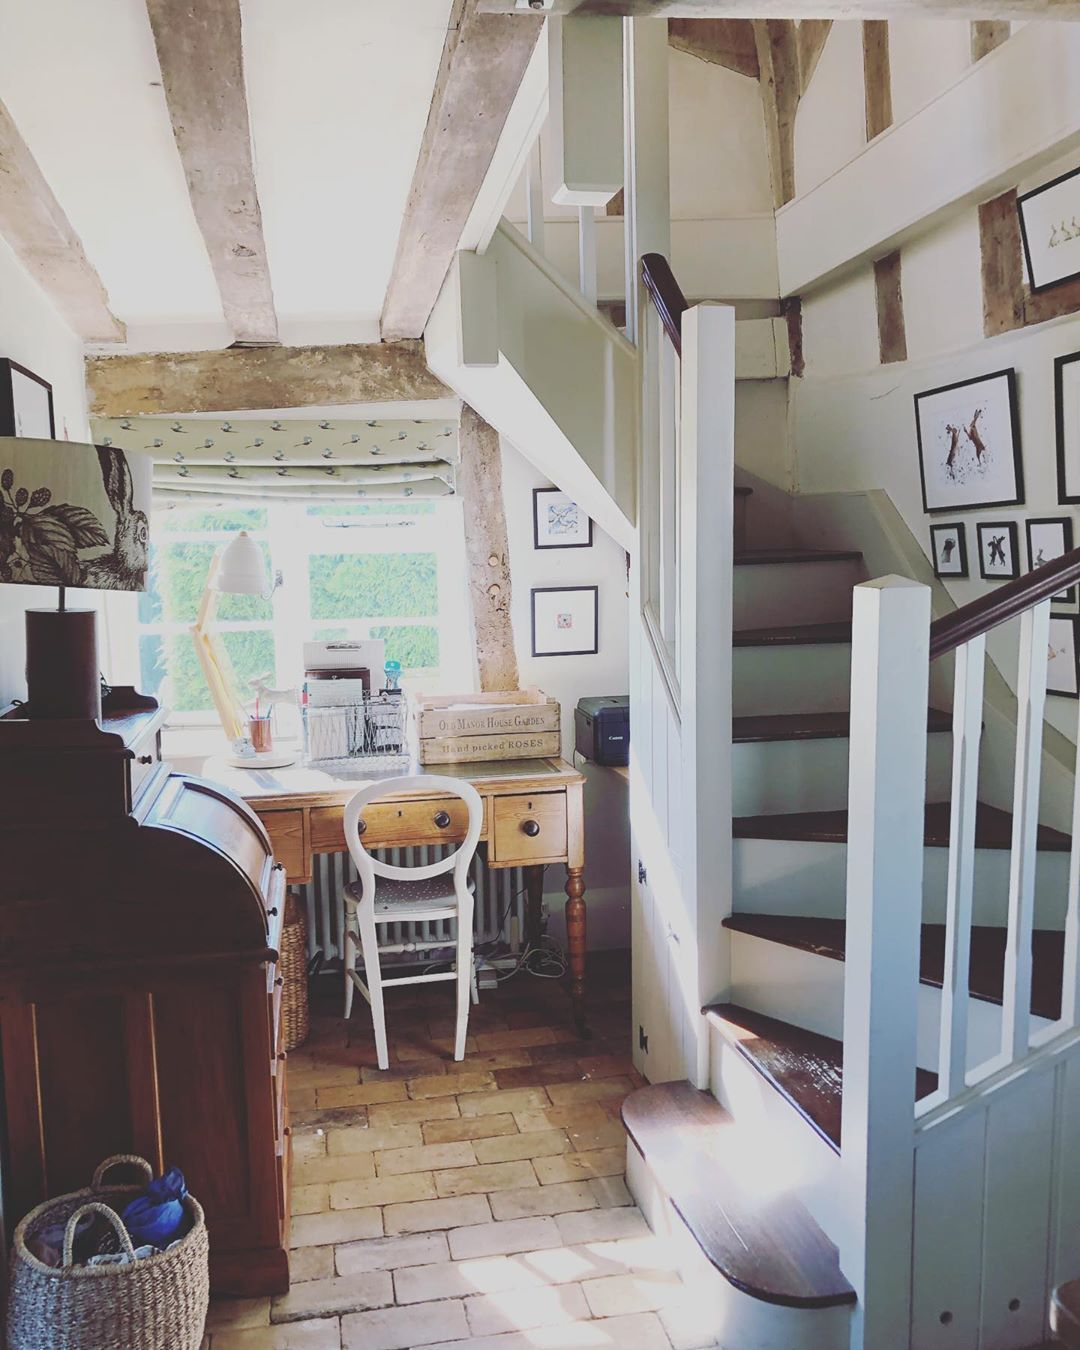 """Jane on Instagram: """"Morning, sunny Monday , hope it is too where you are . Have a lovely day x😘❤️ #countrycottage #hallway #countryhome #desk #brickfloor…"""""""